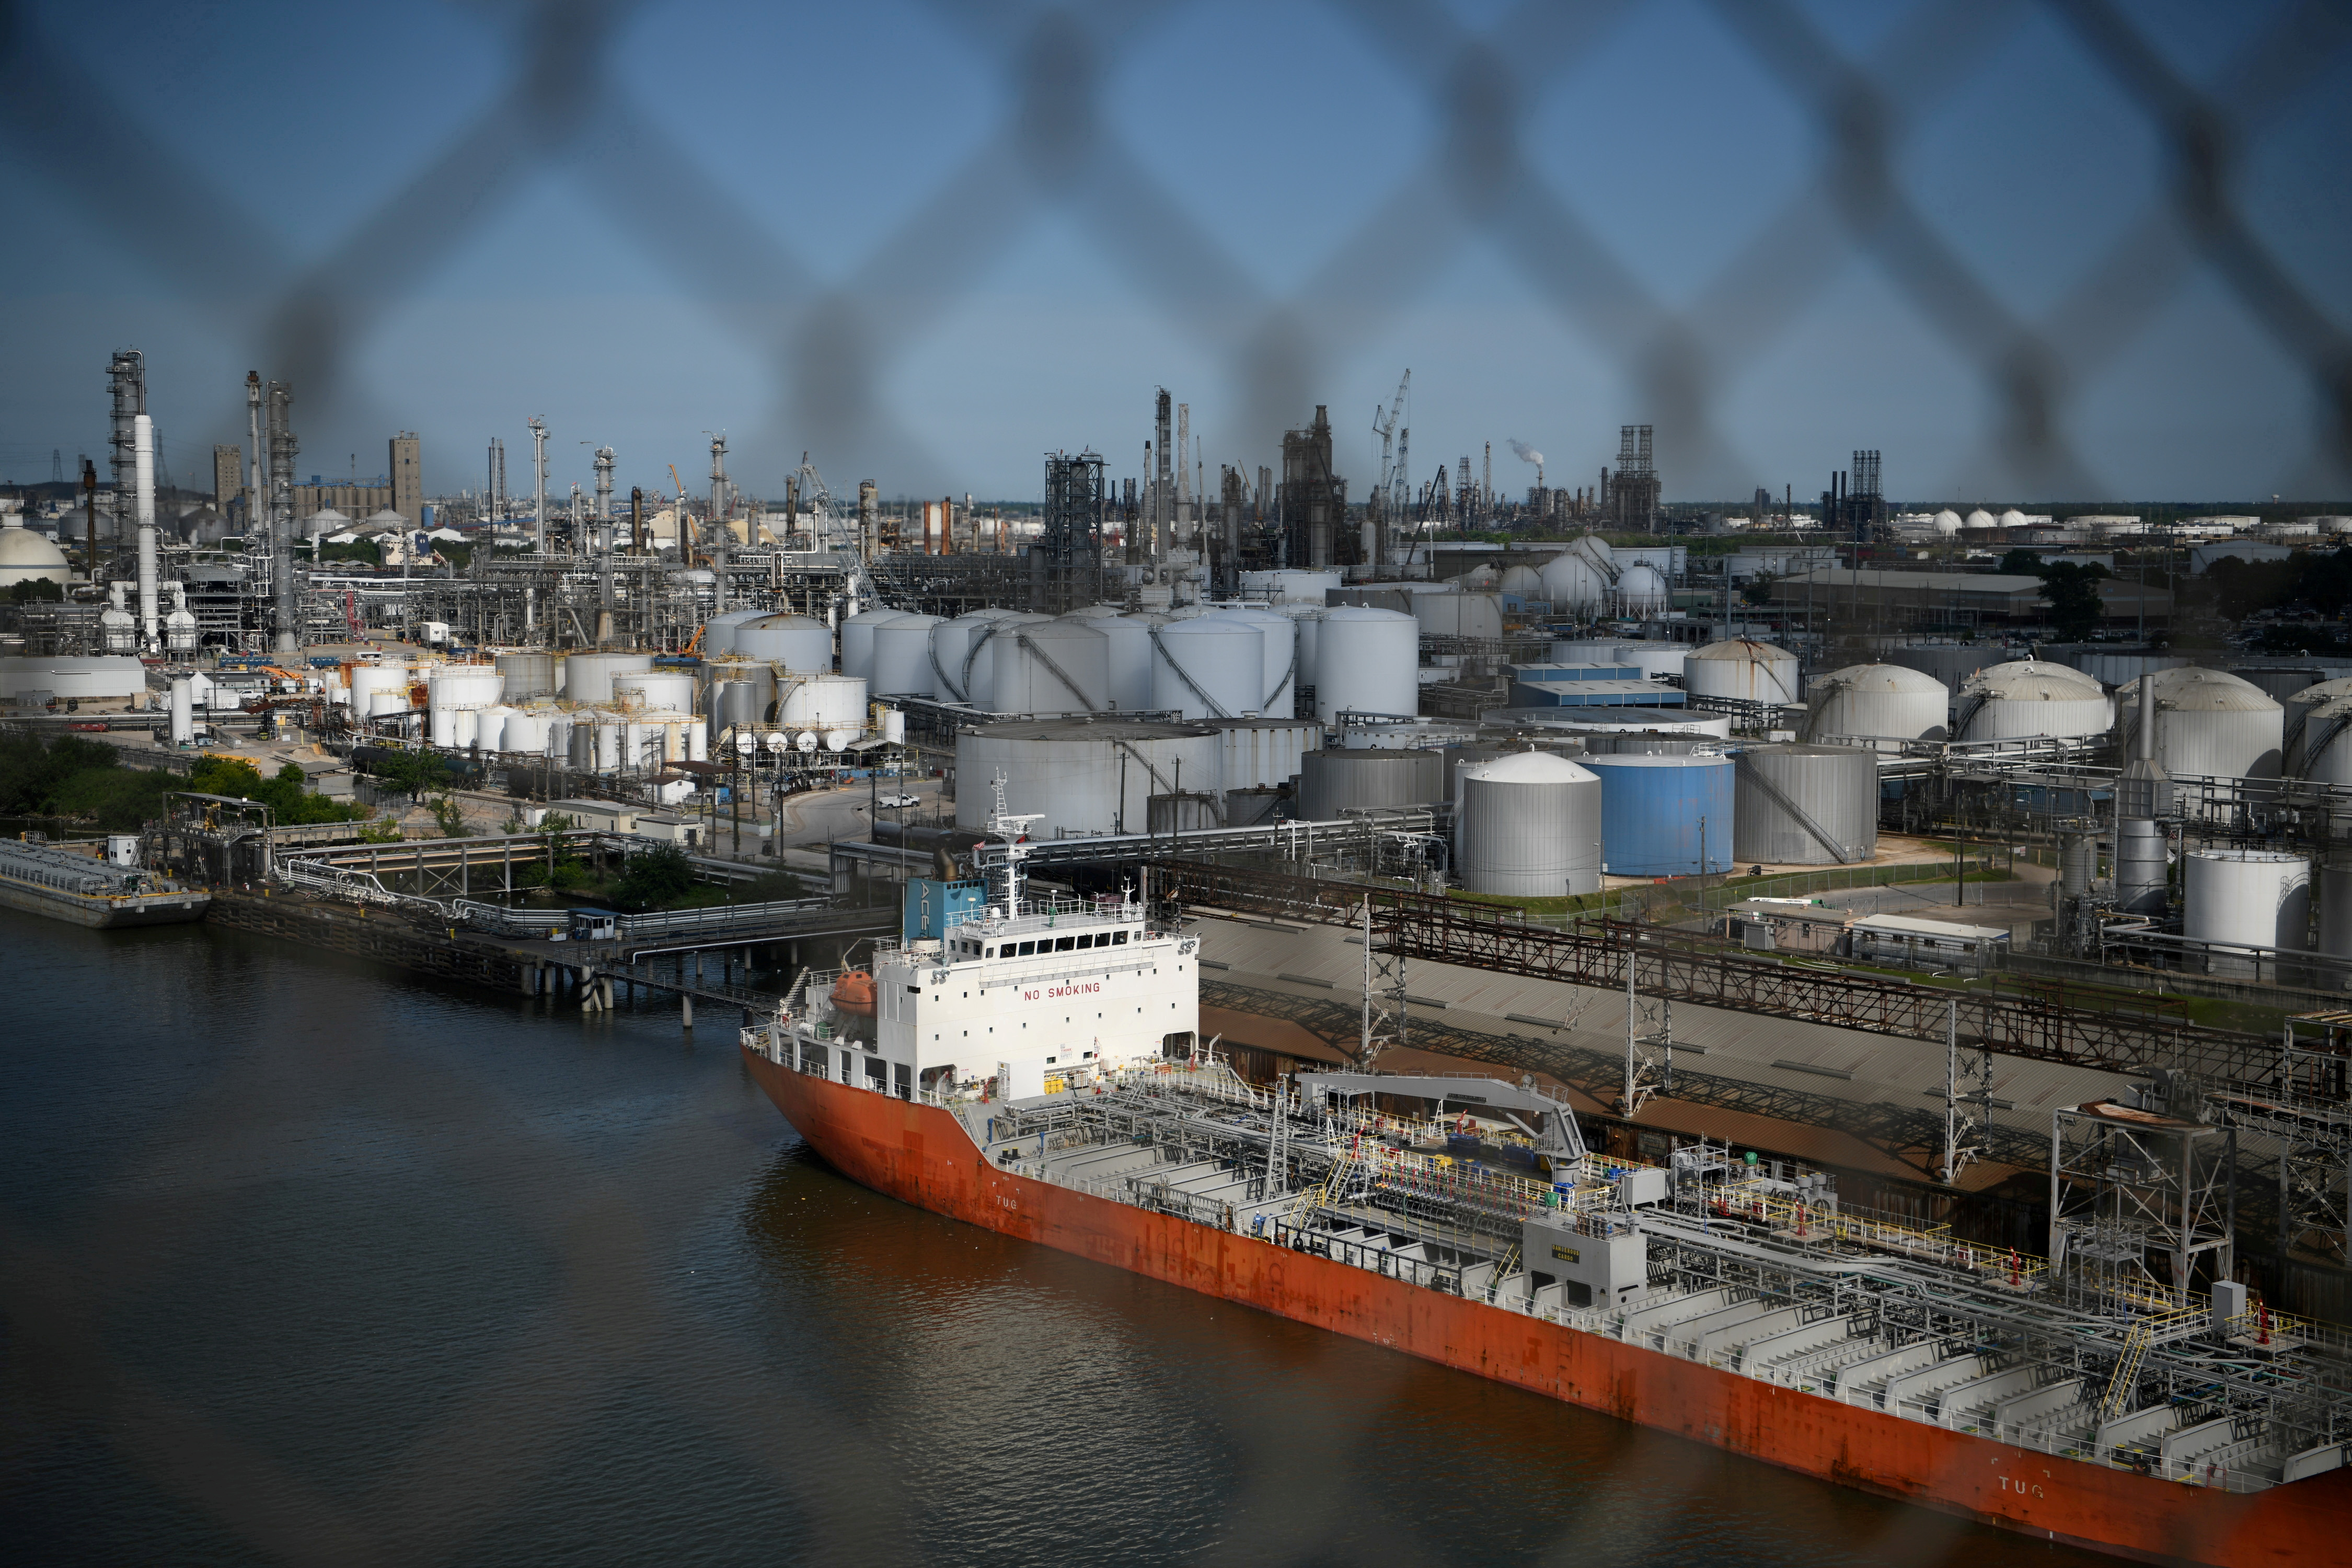 The Houston Ship Channel and adjacent refineries, part of the Port of Houston, are seen in Houston, Texas, U.S., May 5, 2019.  REUTERS/Loren Elliott